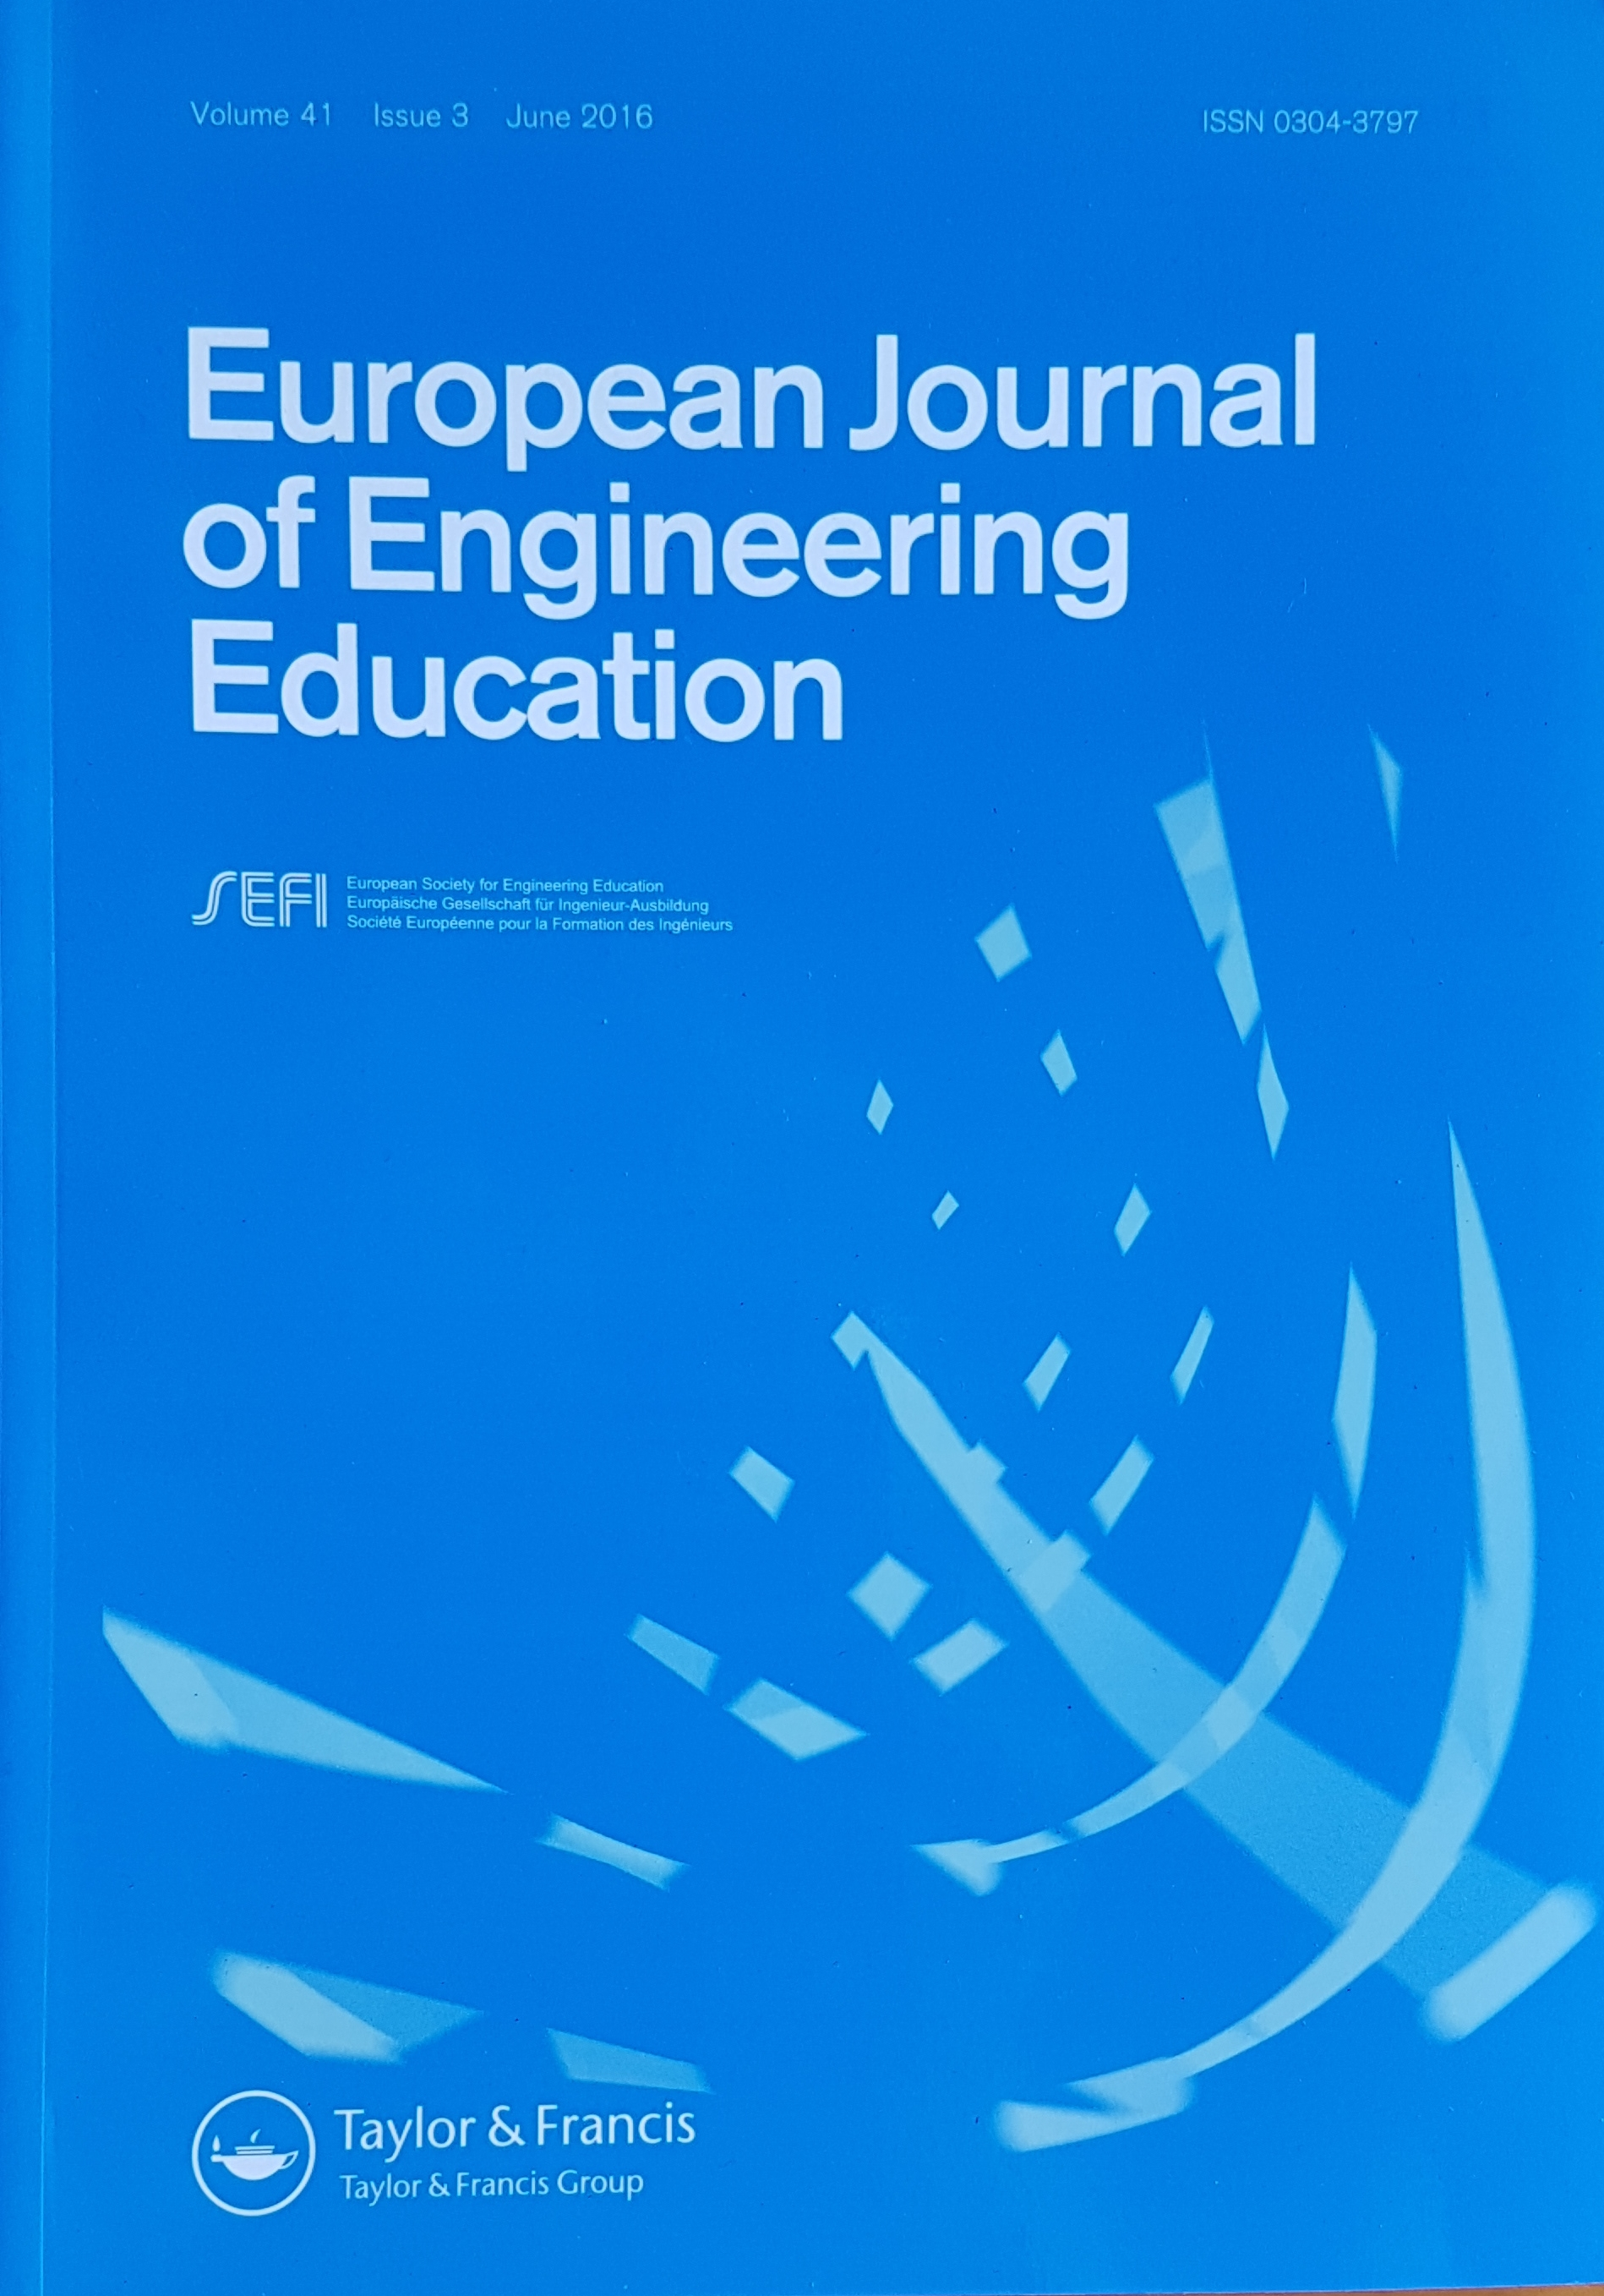 CALL FOR PAPERS: EJEE Special Issue